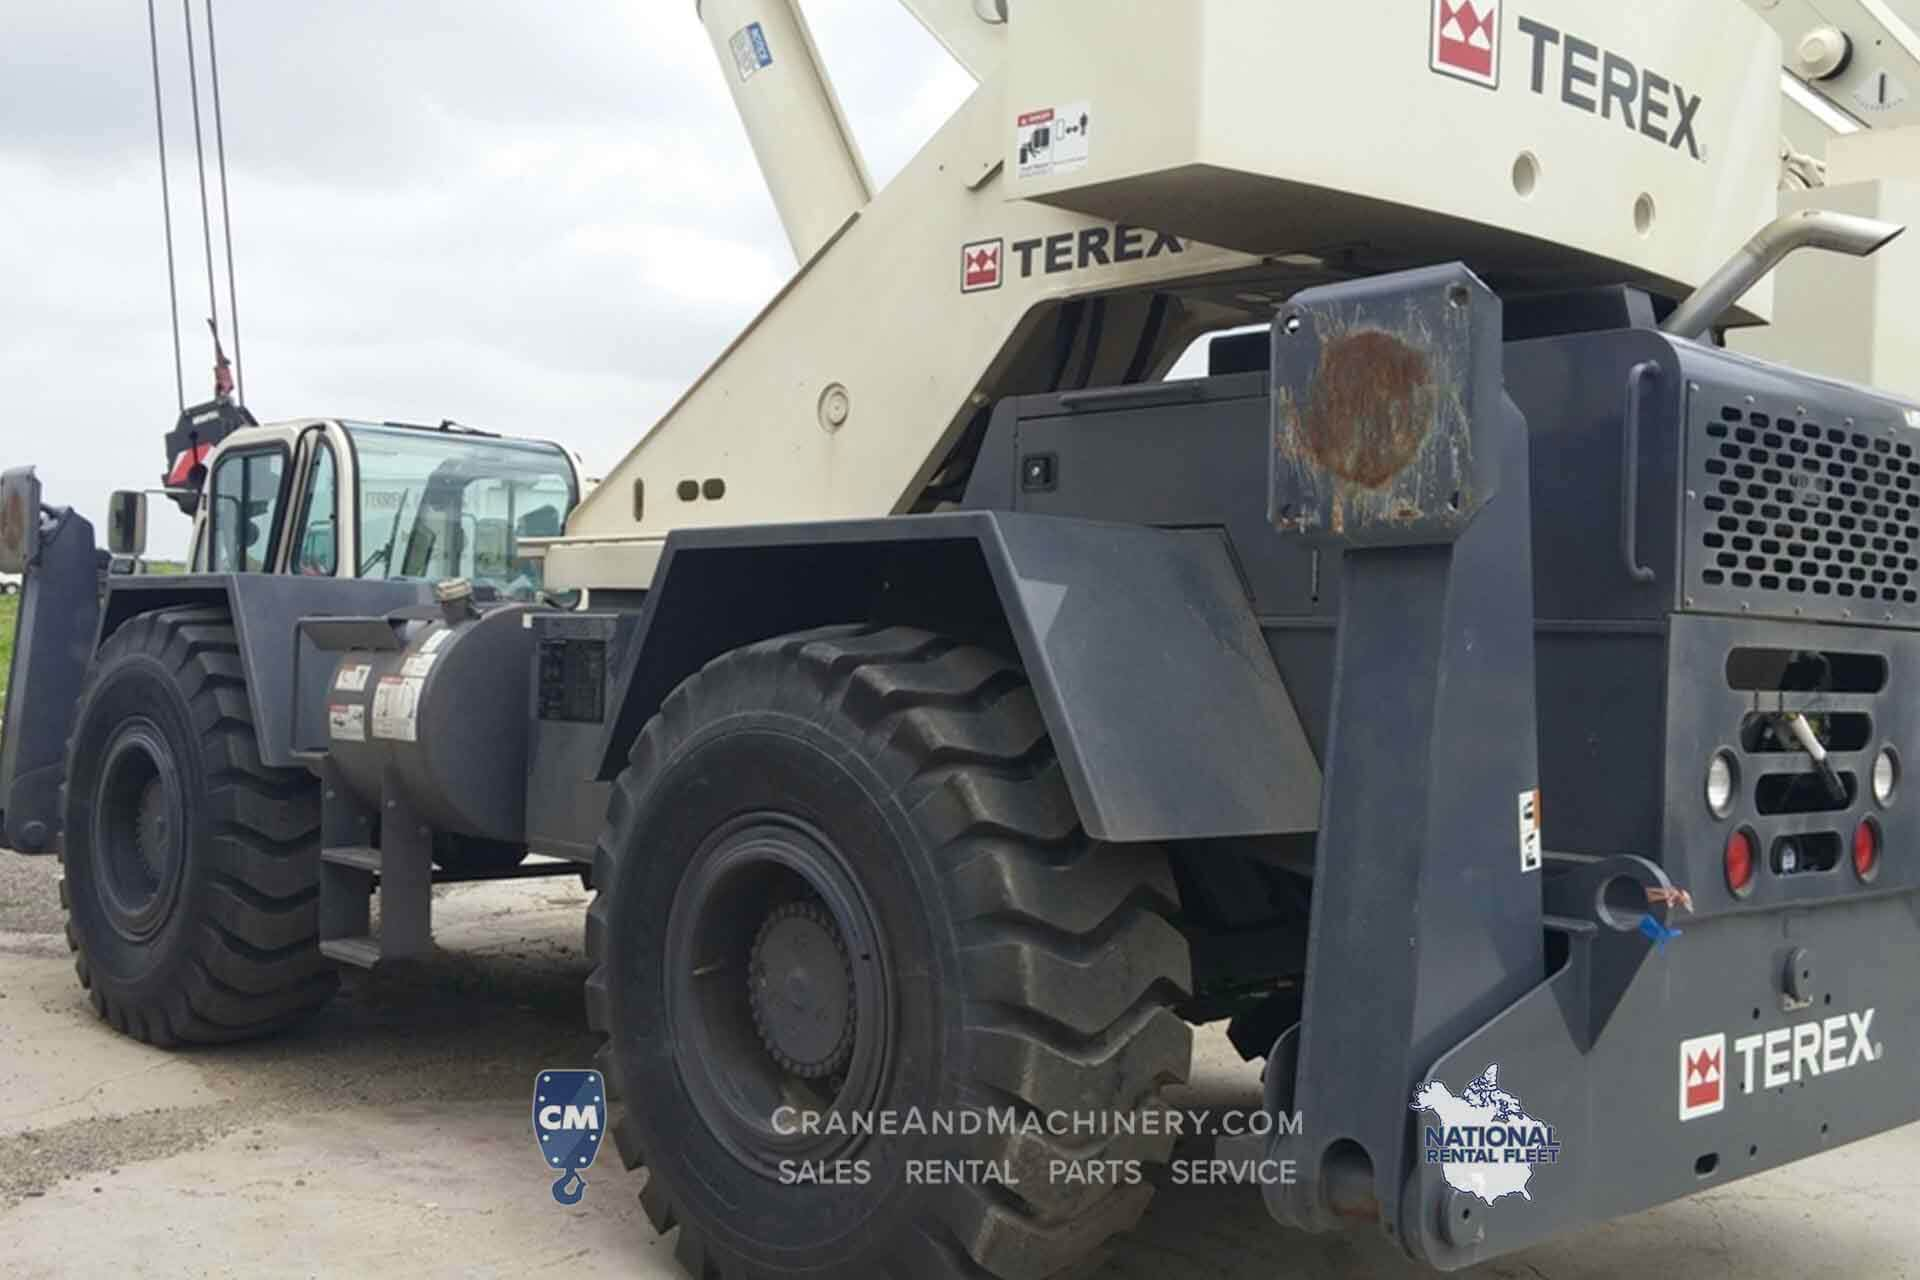 Terex CD225 - Terex RT Crane rentals for Chicago, and North America. Long term and short term rentals available. Purchase new or used Terex RT cranes at Crane & Machinery